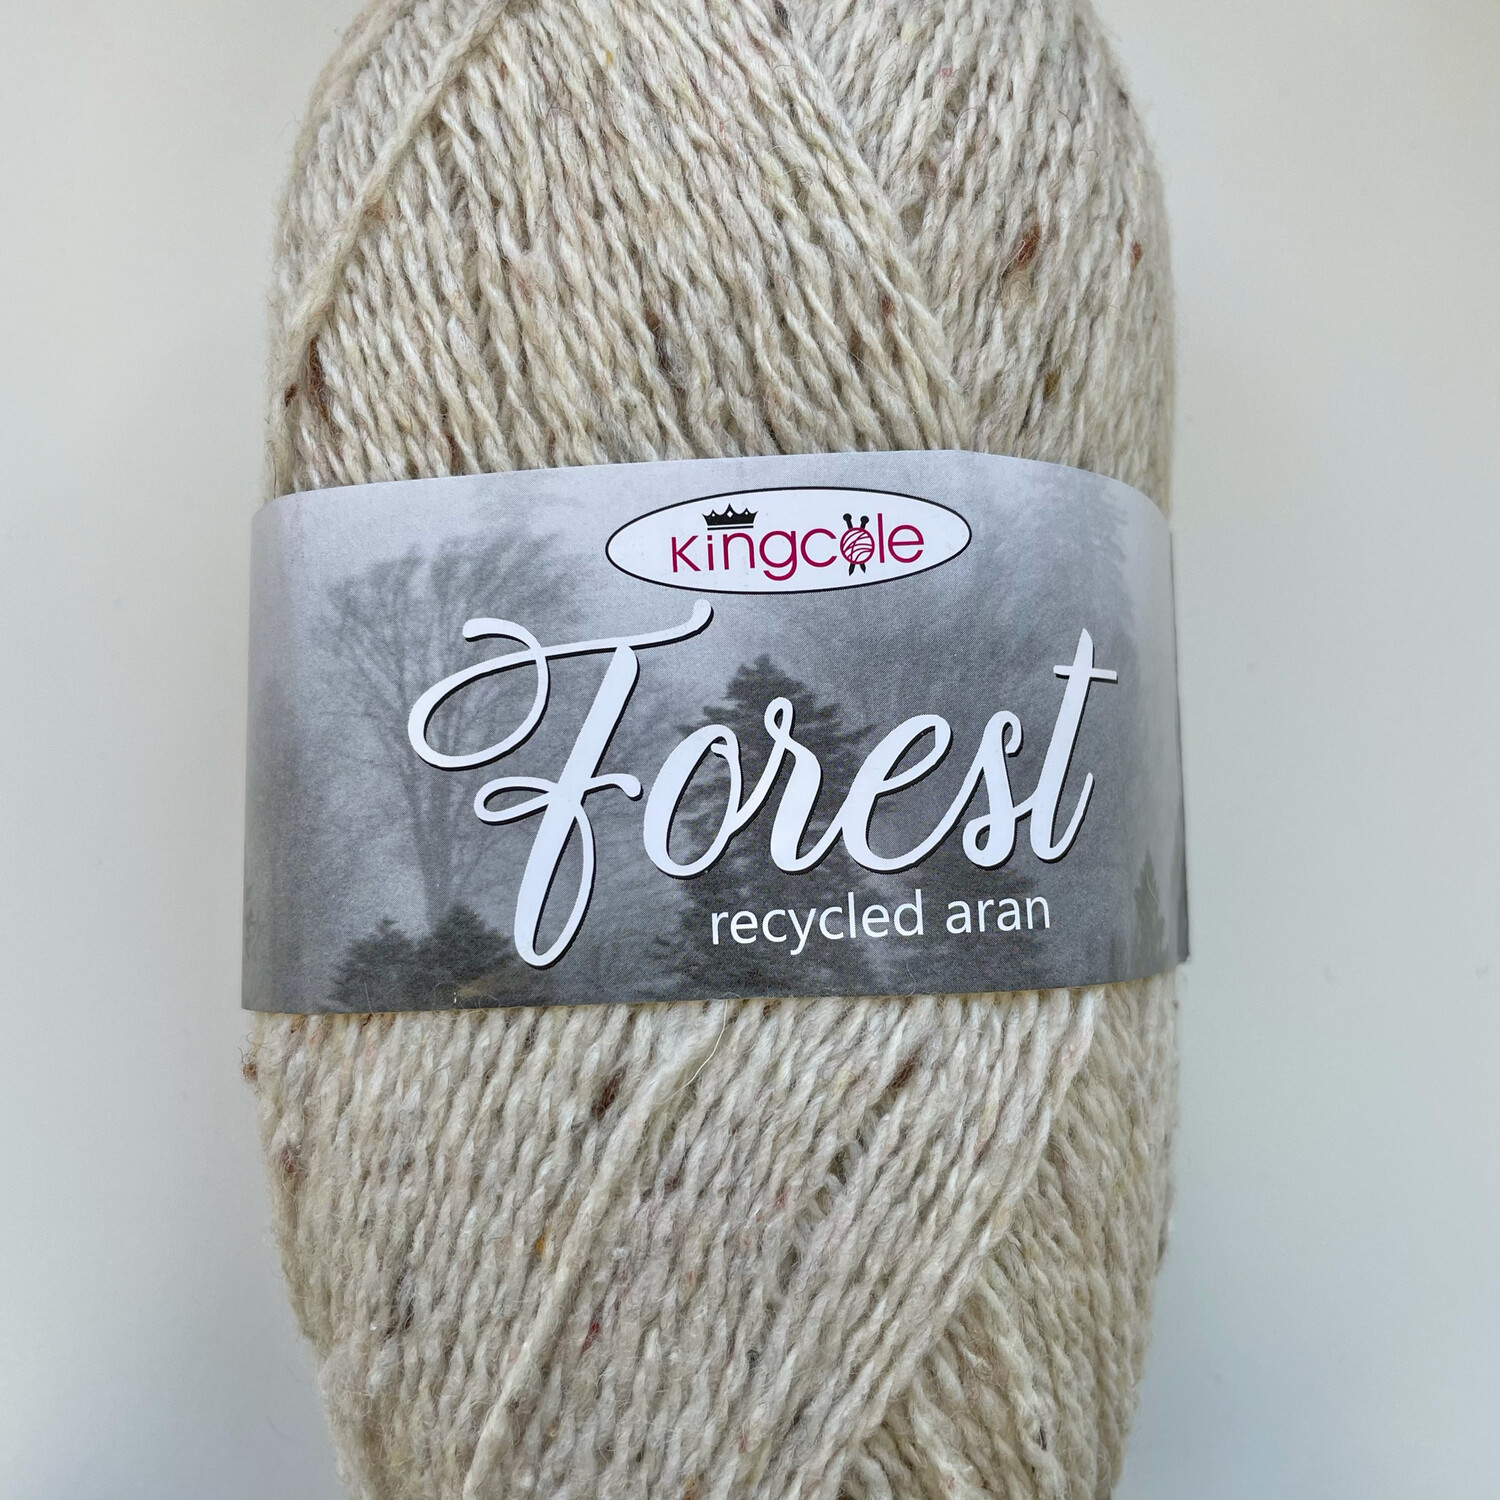 King Cole Forest Aran 100% Recycled Yarn containing 35% Wool - Hartwood Forest